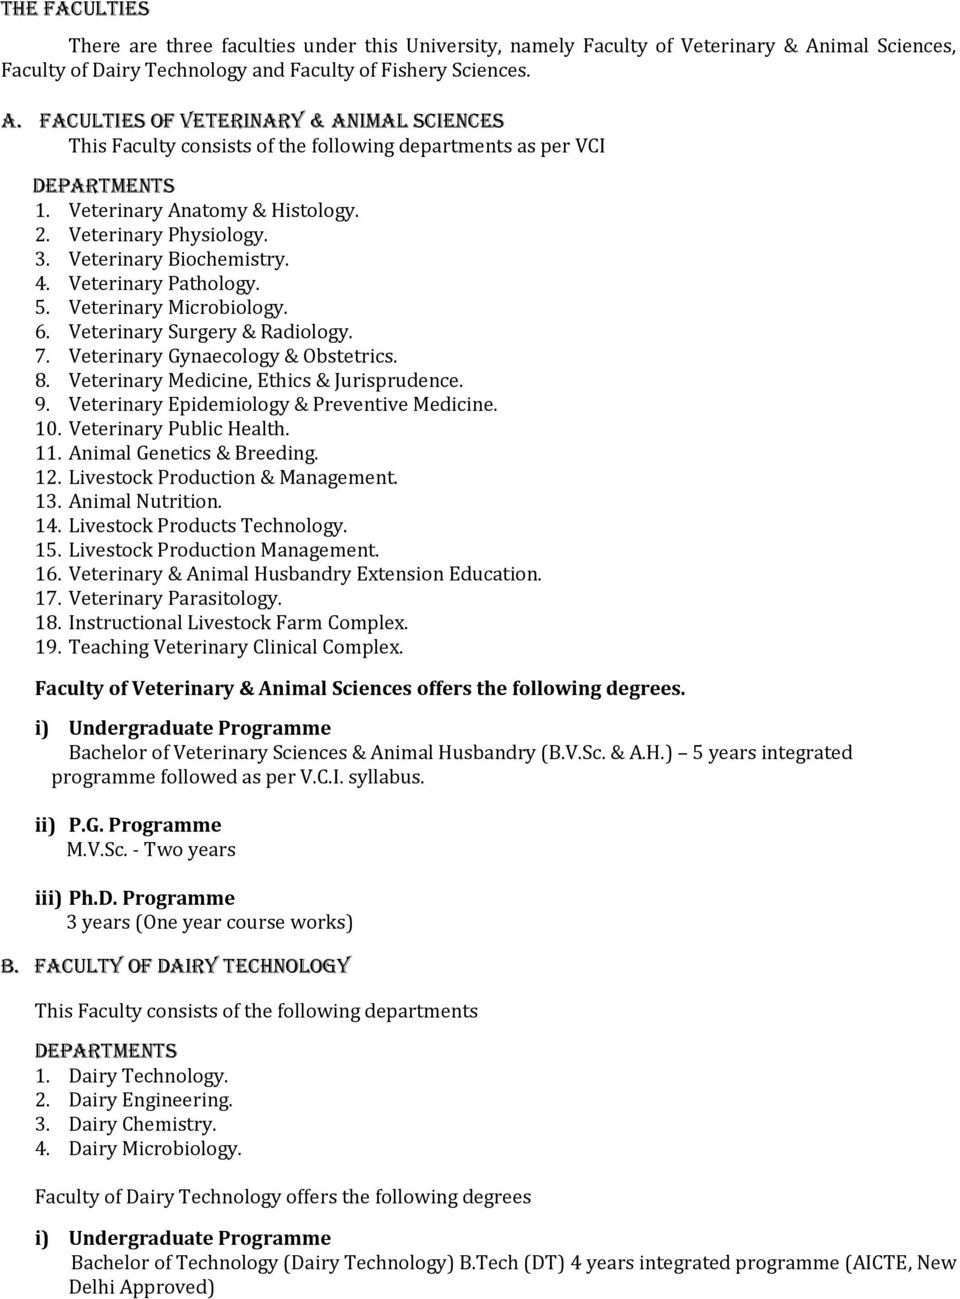 Veterinary Anatomy & Histology. 2. Veterinary Physiology. 3. Veterinary Biochemistry. 4. Veterinary Pathology. 5. Veterinary Microbiology. 6. Veterinary Surgery & Radiology. 7.